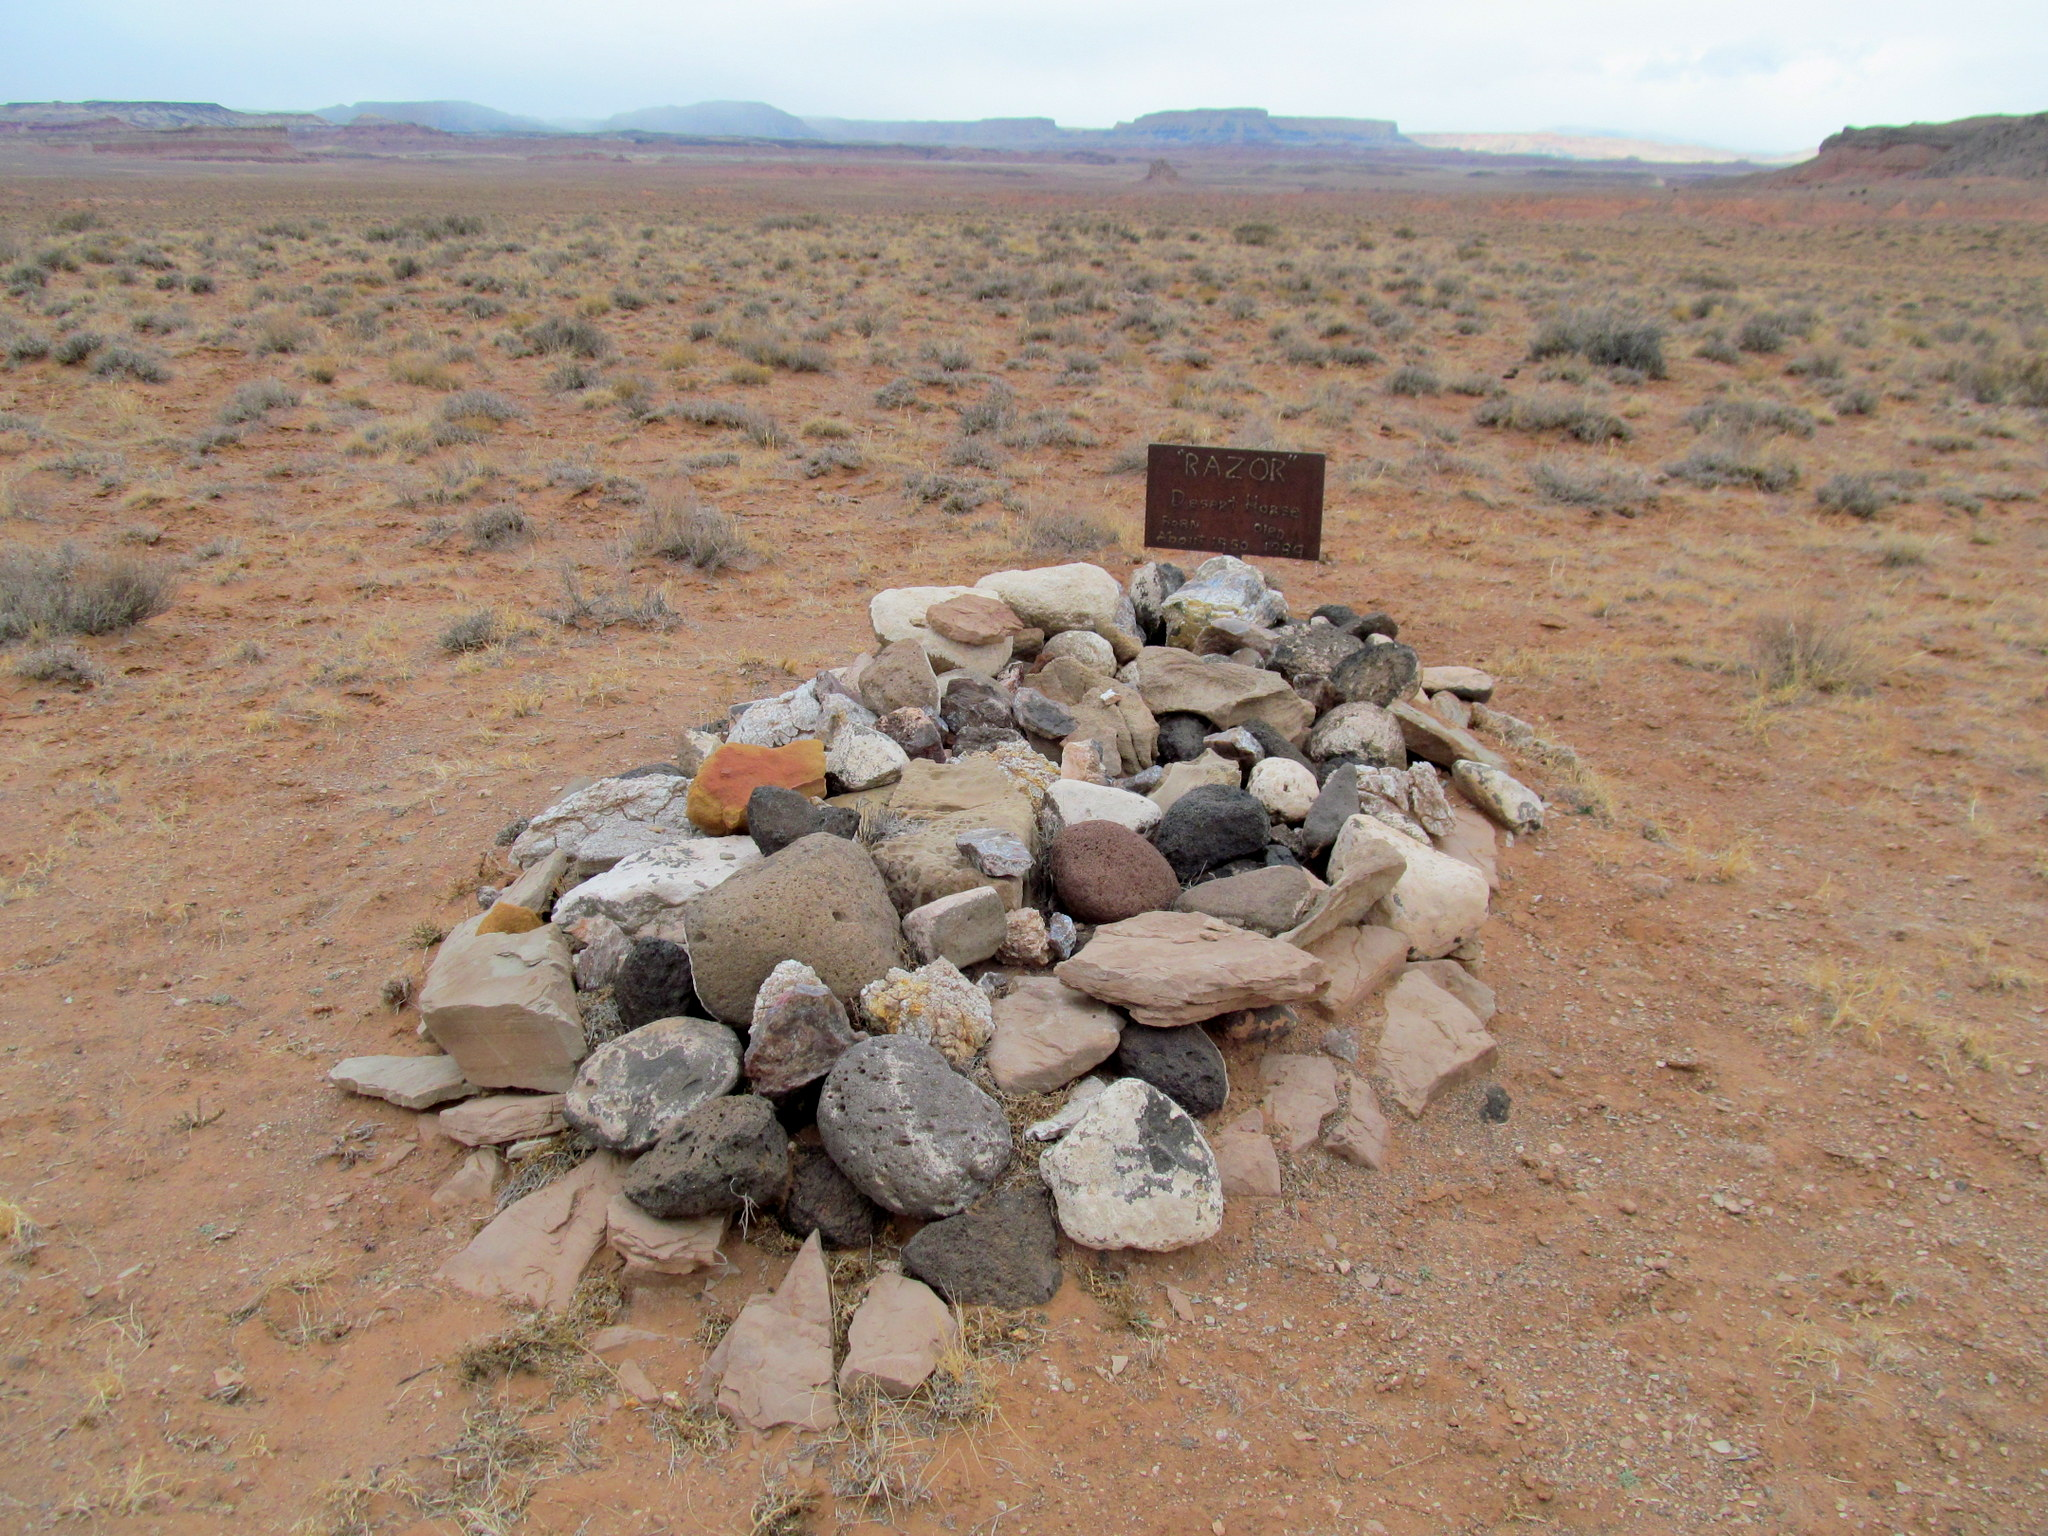 Photo: The grave of Razor, the desert horse